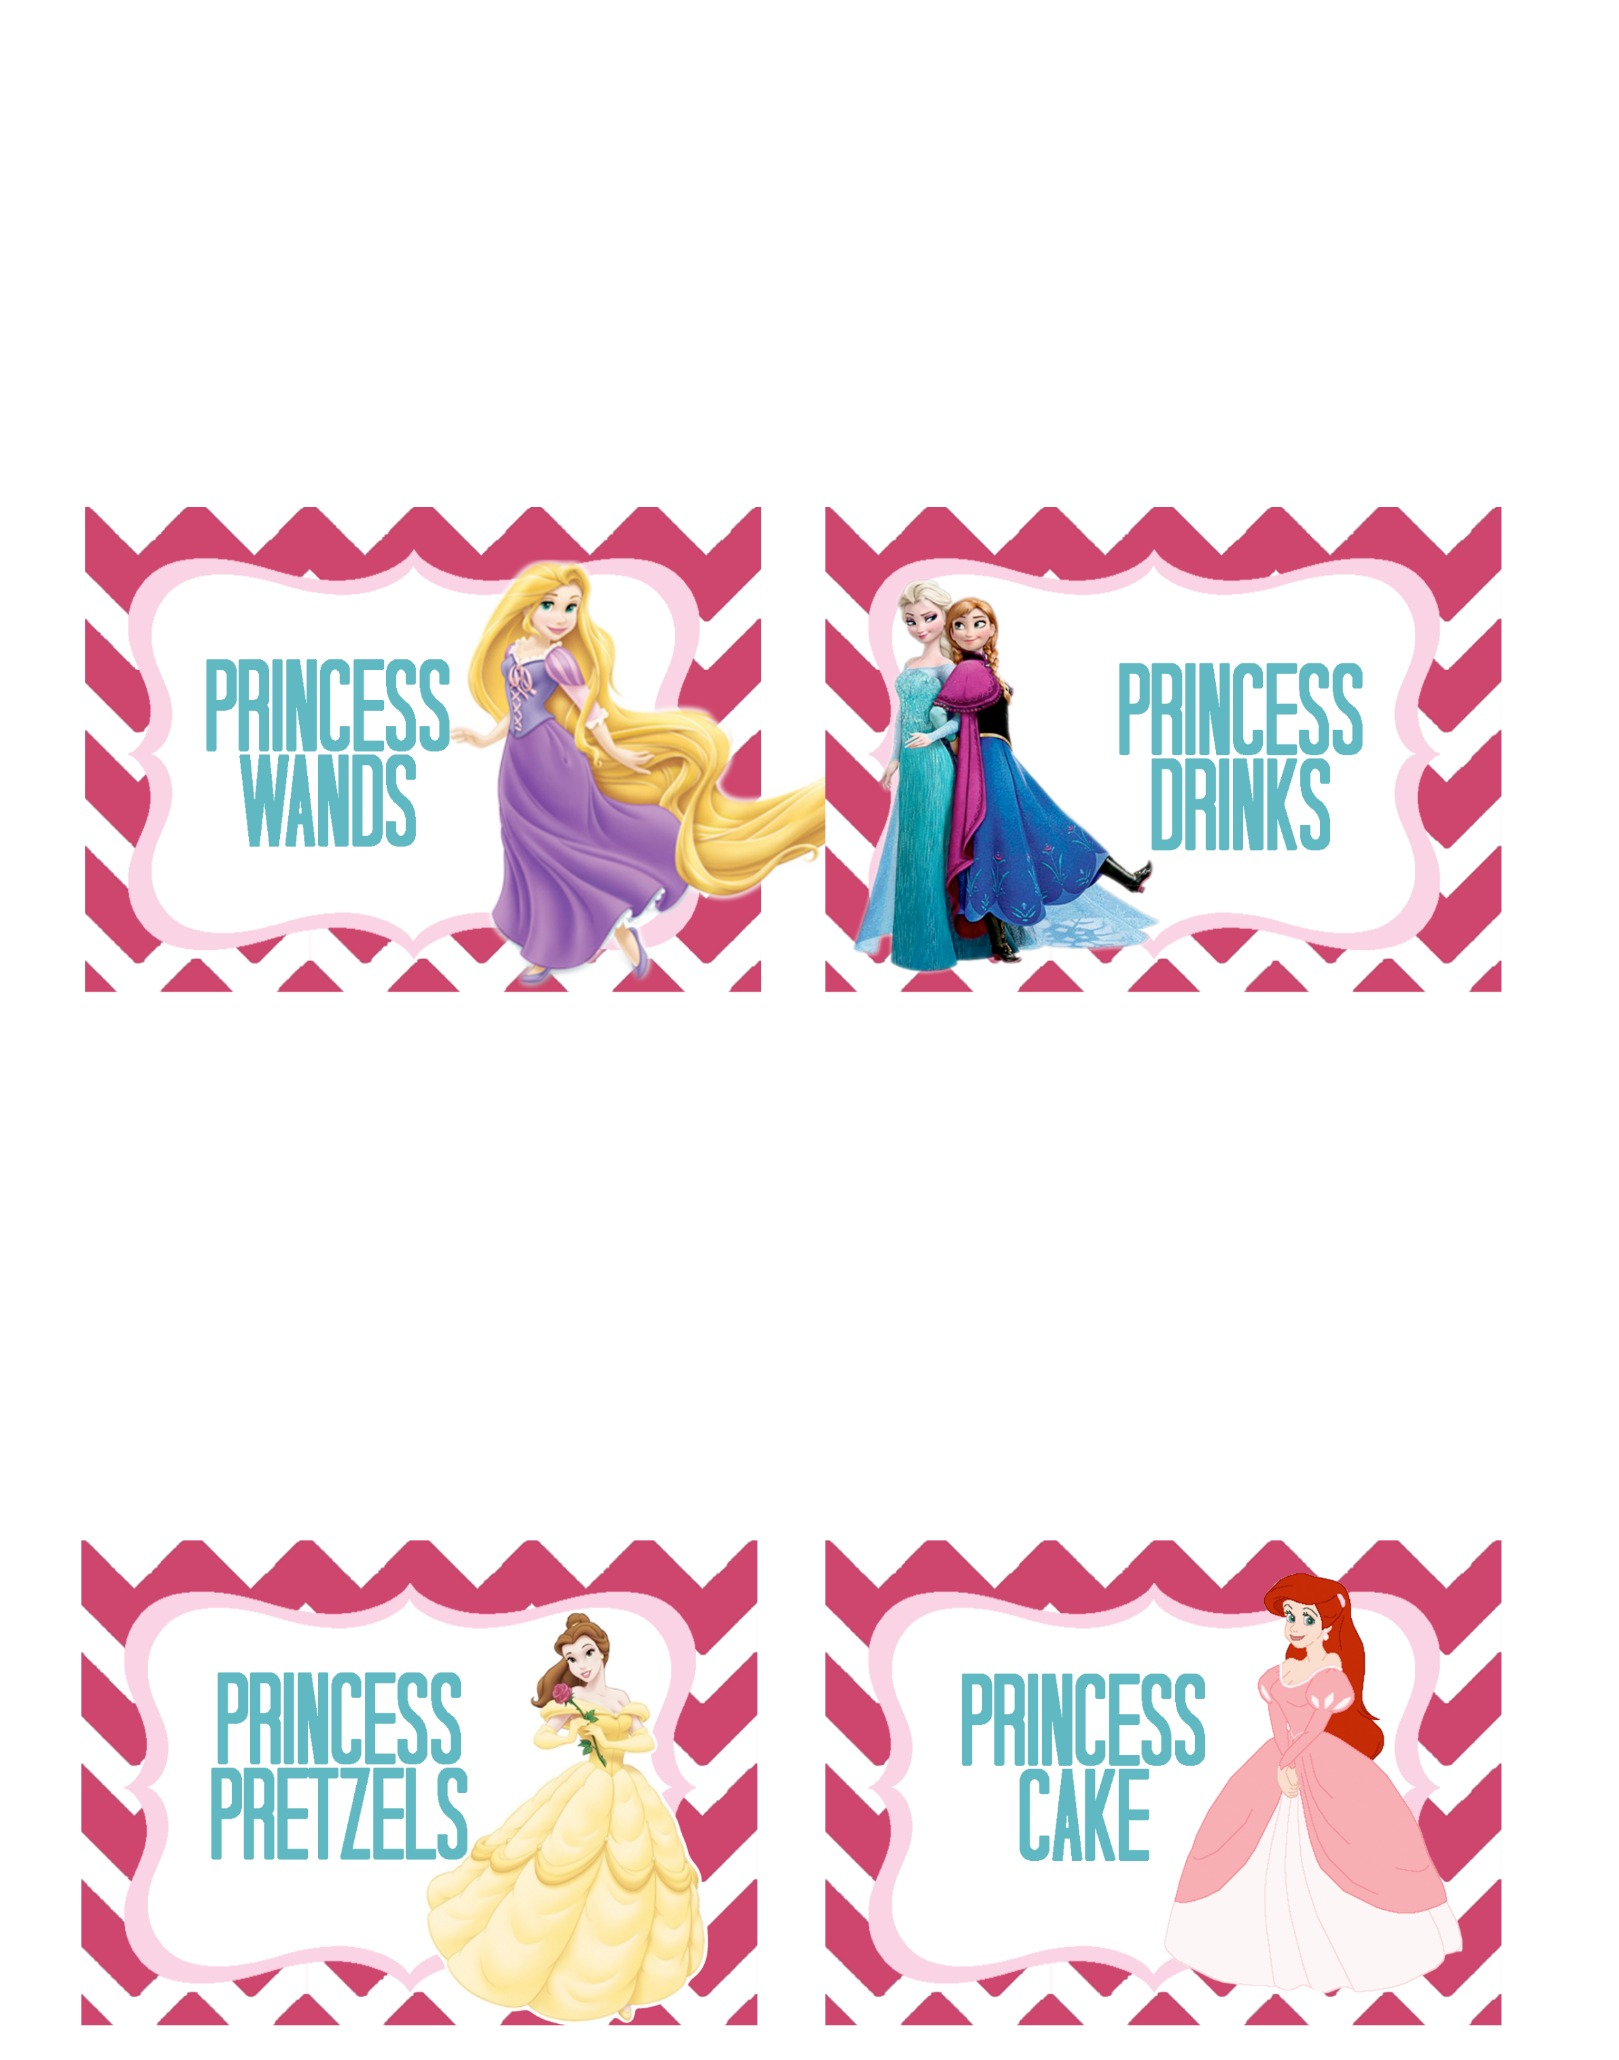 graphic regarding Disney Princess Cupcake Toppers Free Printable called Princess Get together-Totally free Printable